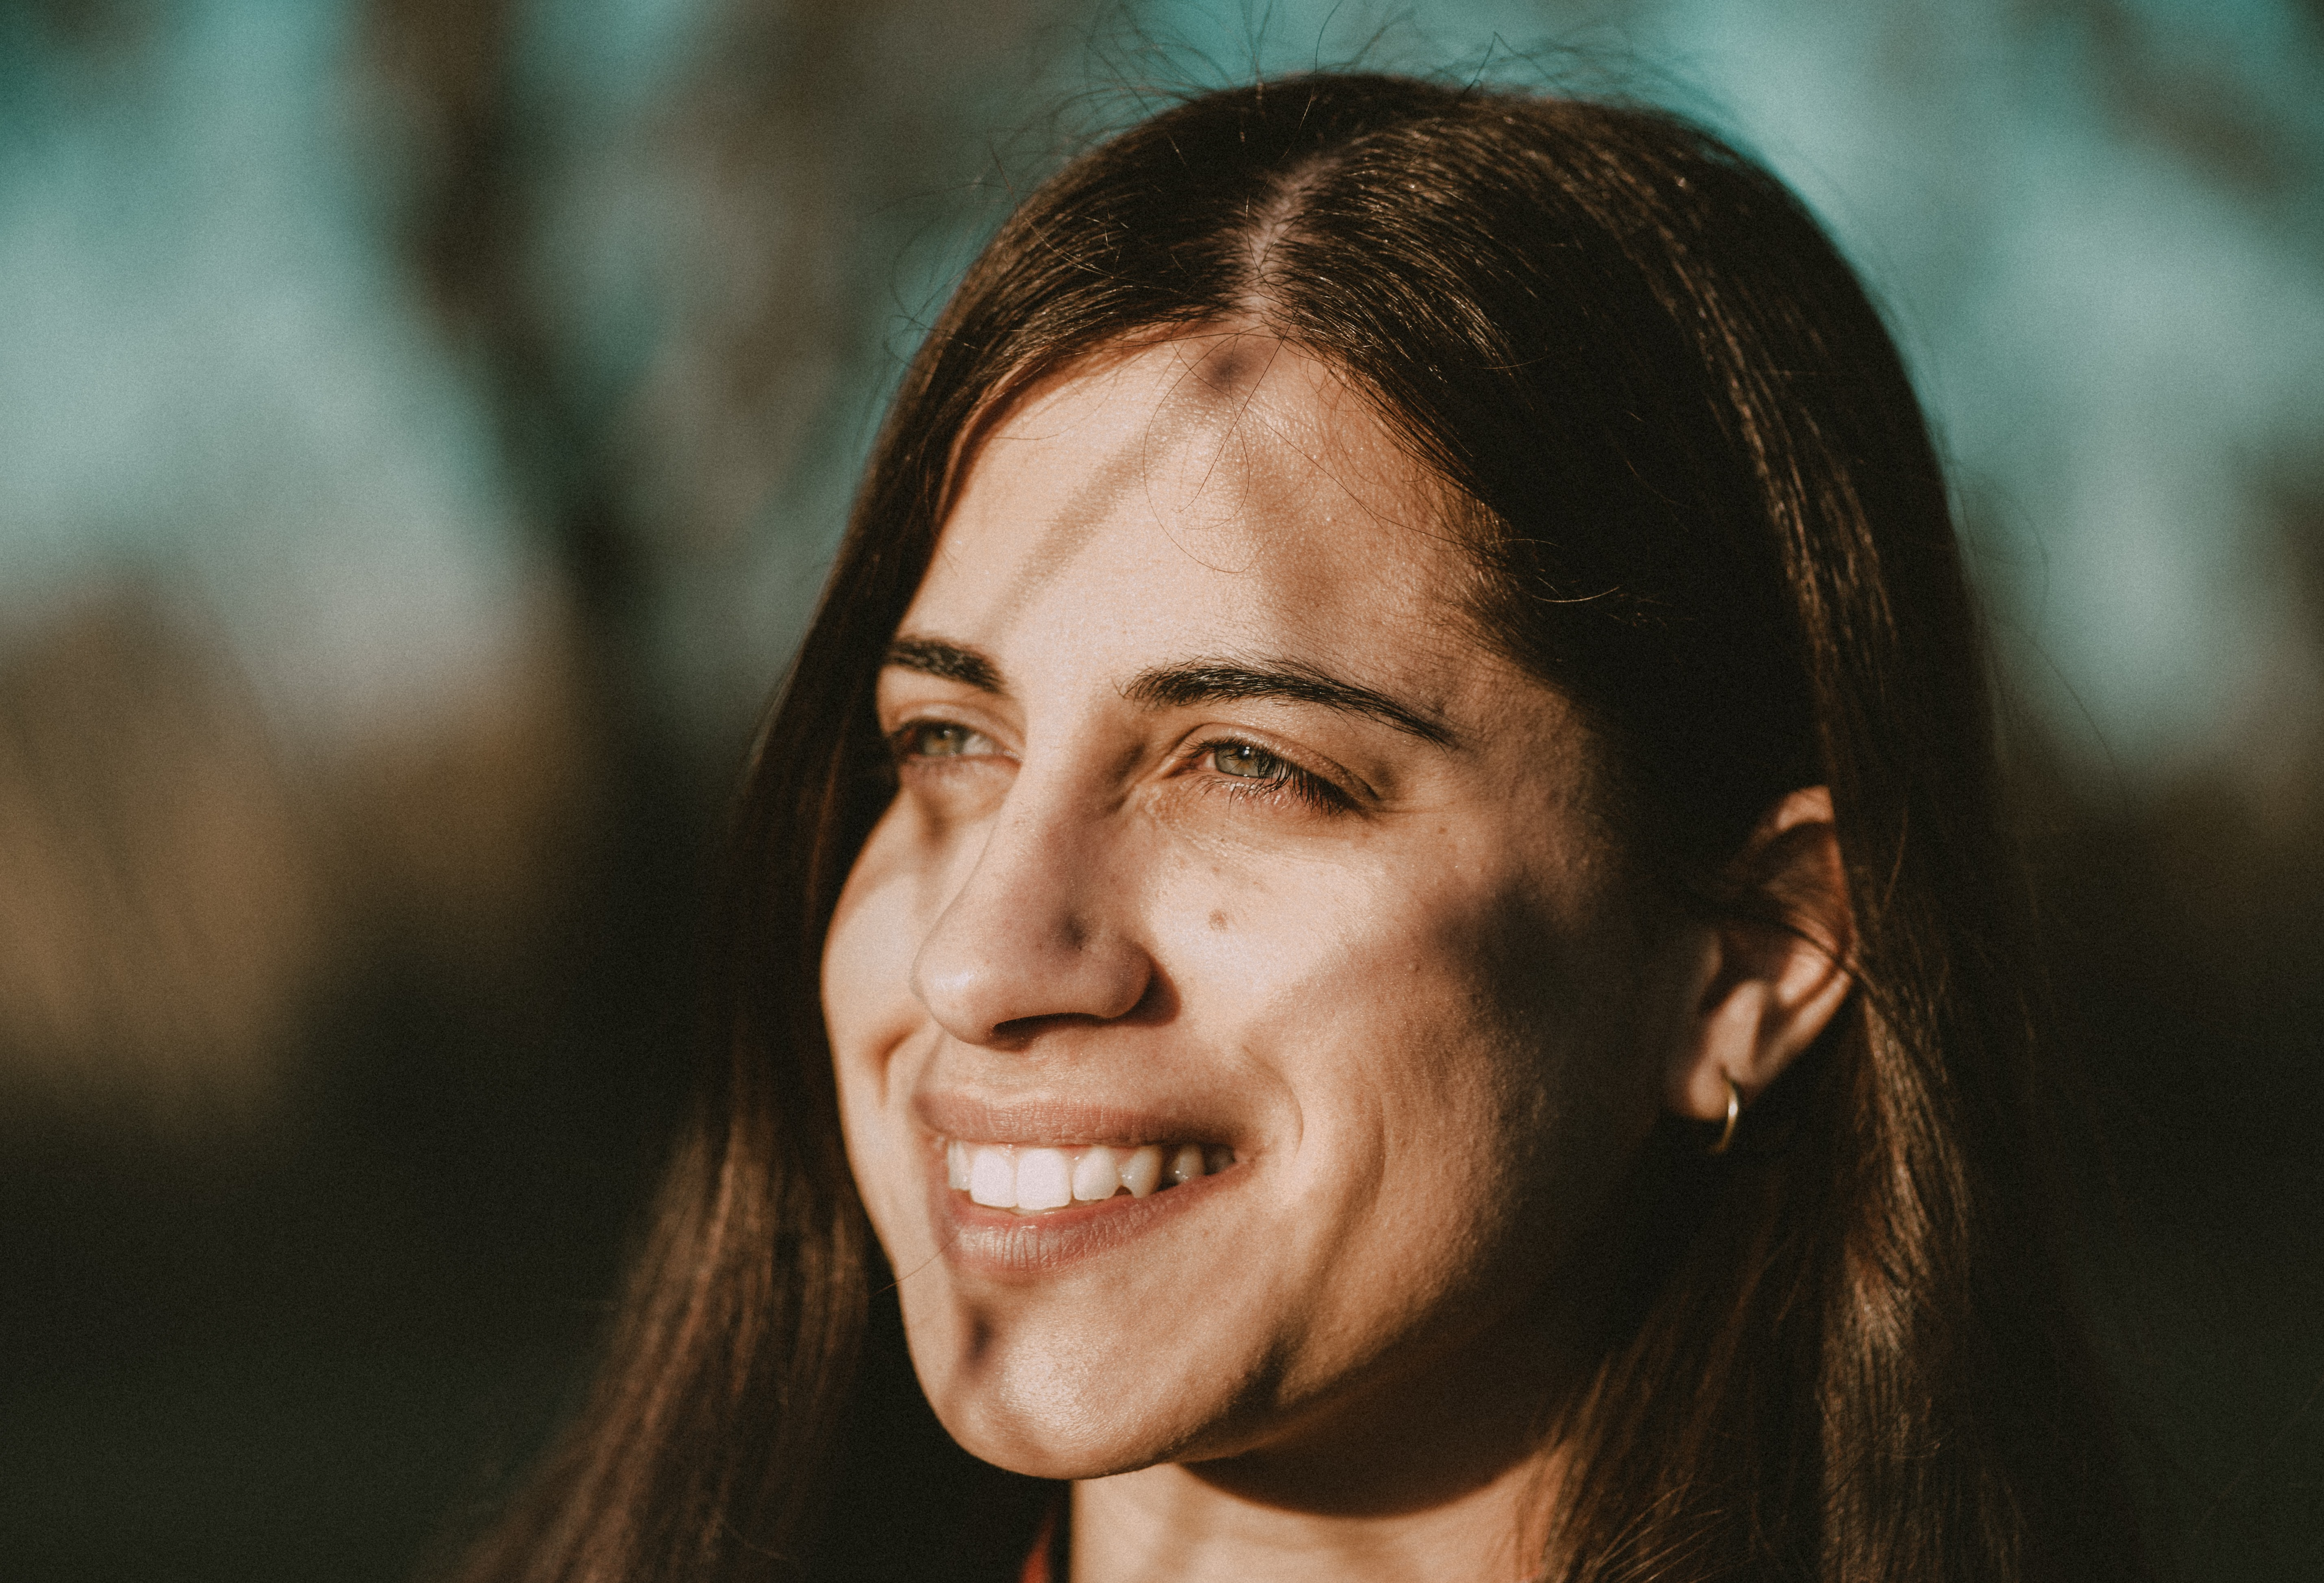 selective focus photography of smiling woman